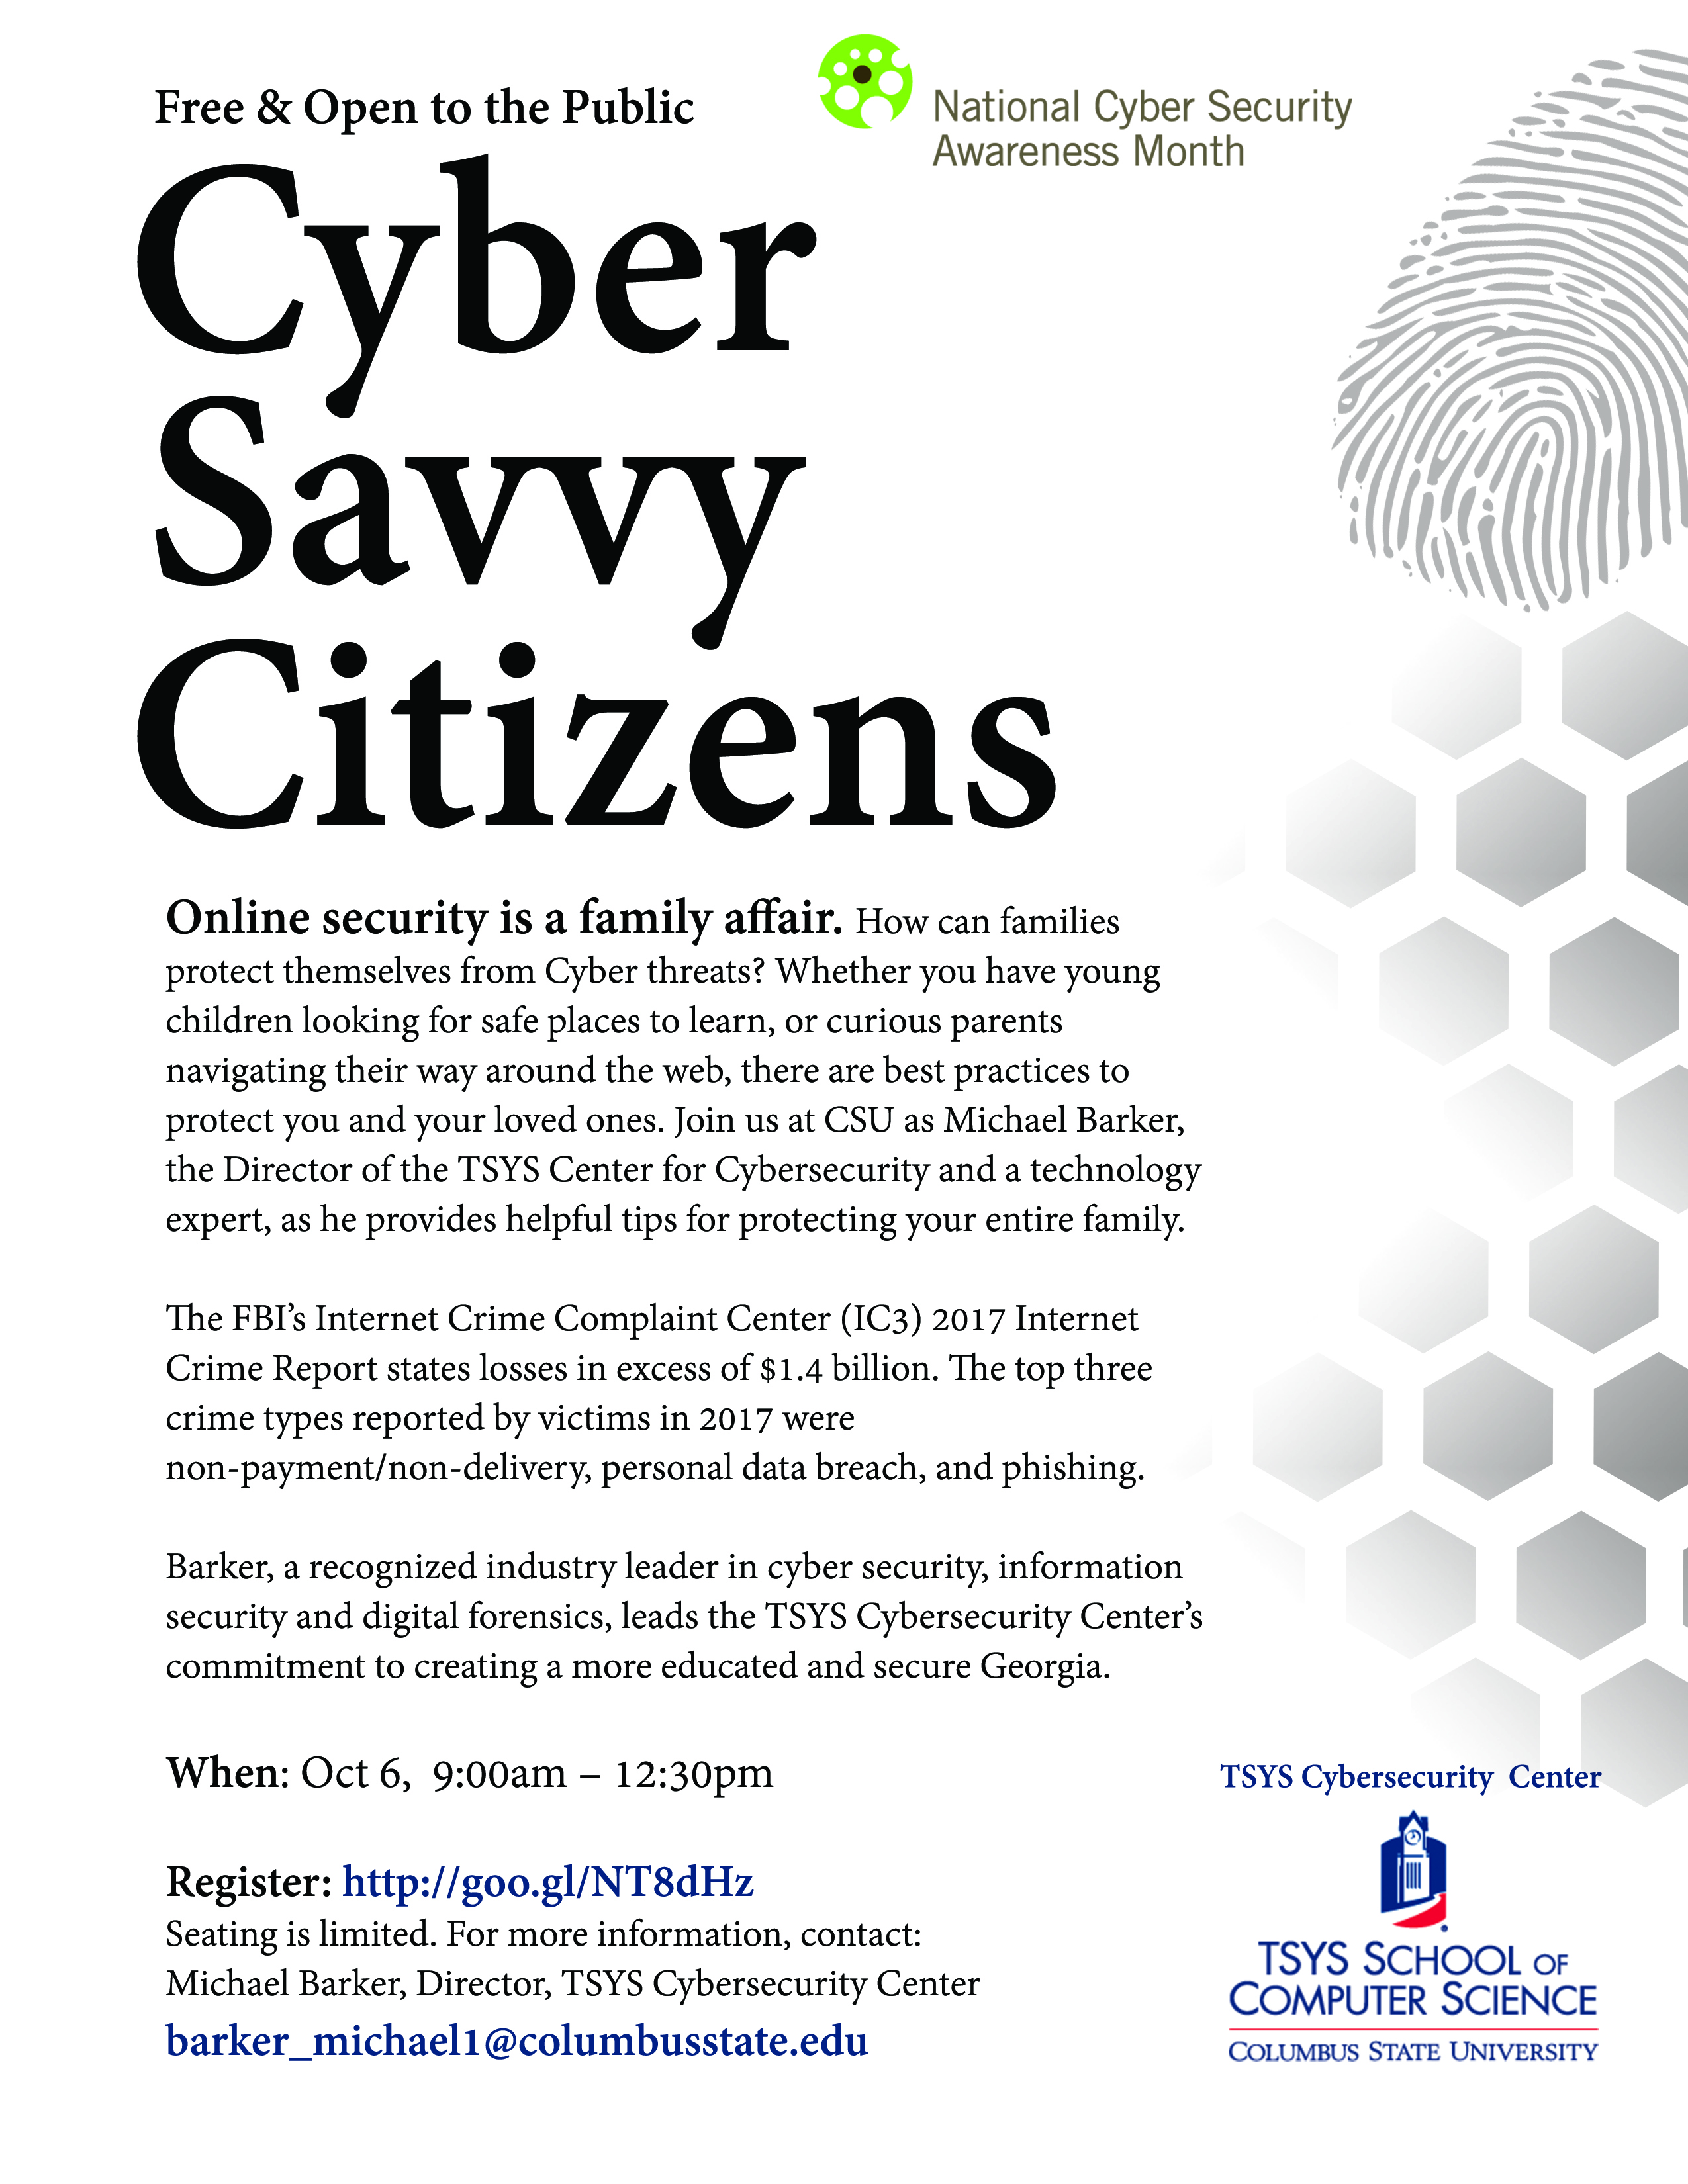 Cyber Savvy Citizens